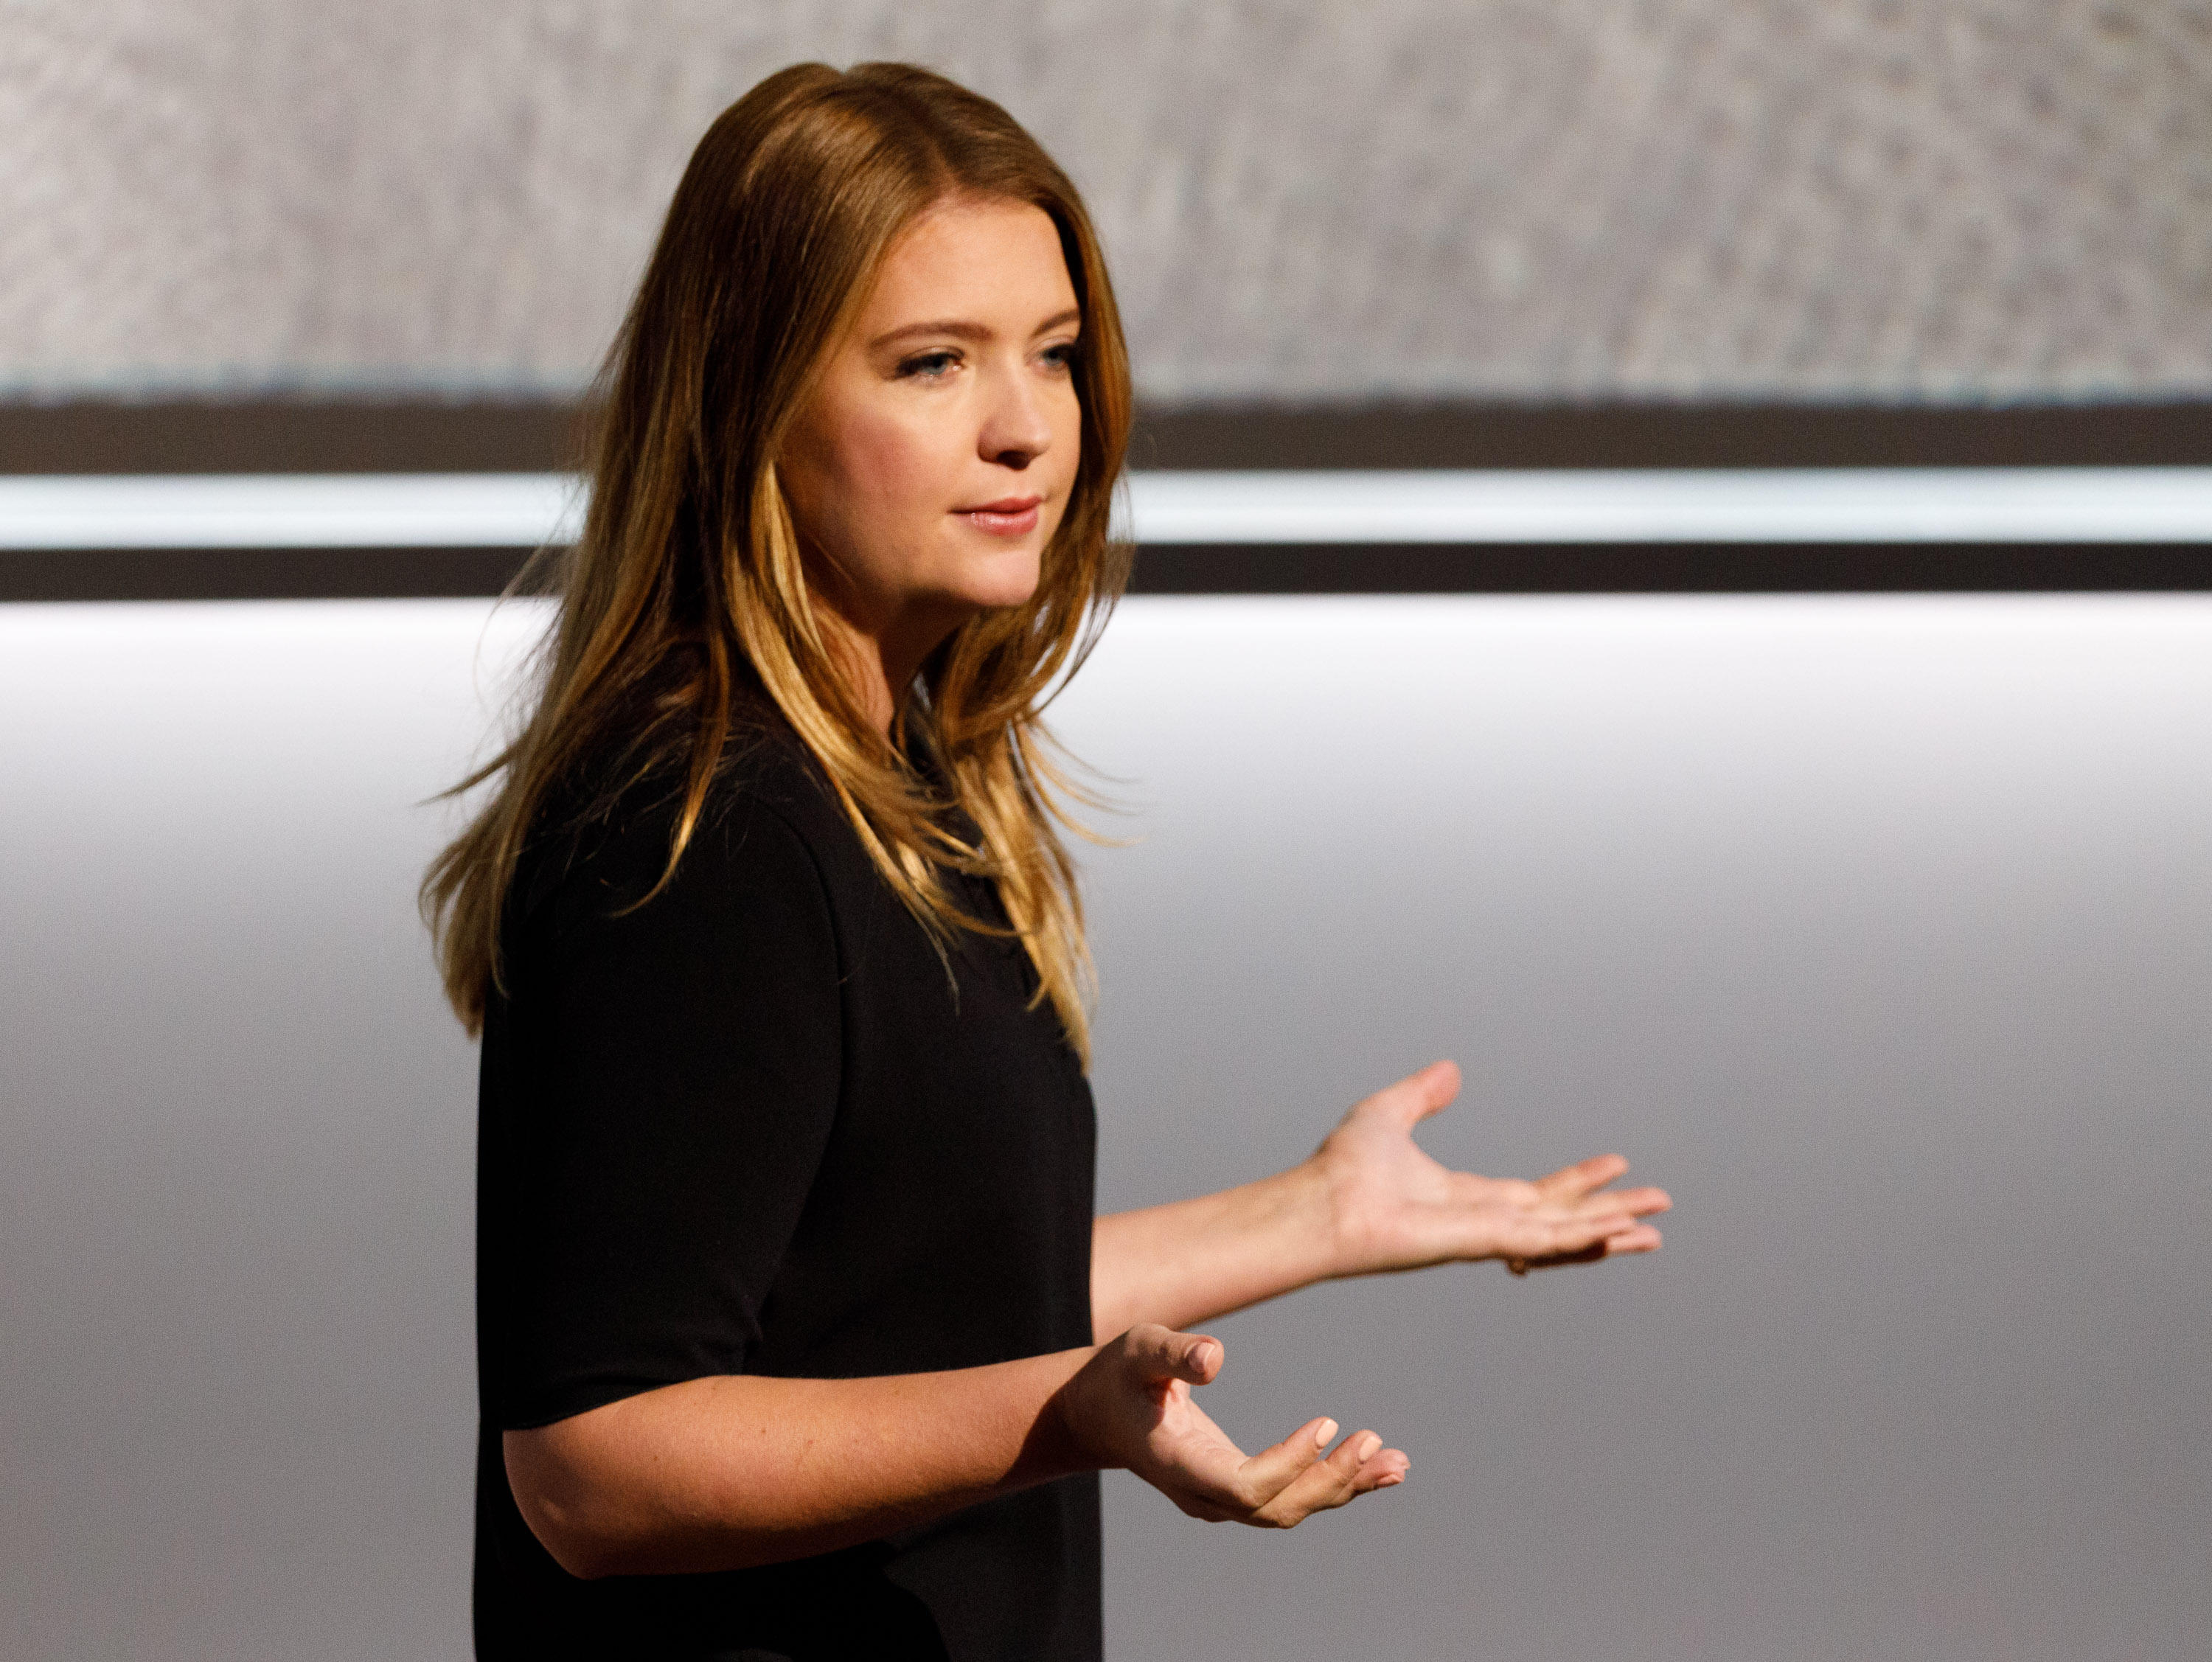 Isabelle Olsson, Google's lead designer for home hardware, was one of four women presenters at Google's Pixel event on Wednesday.